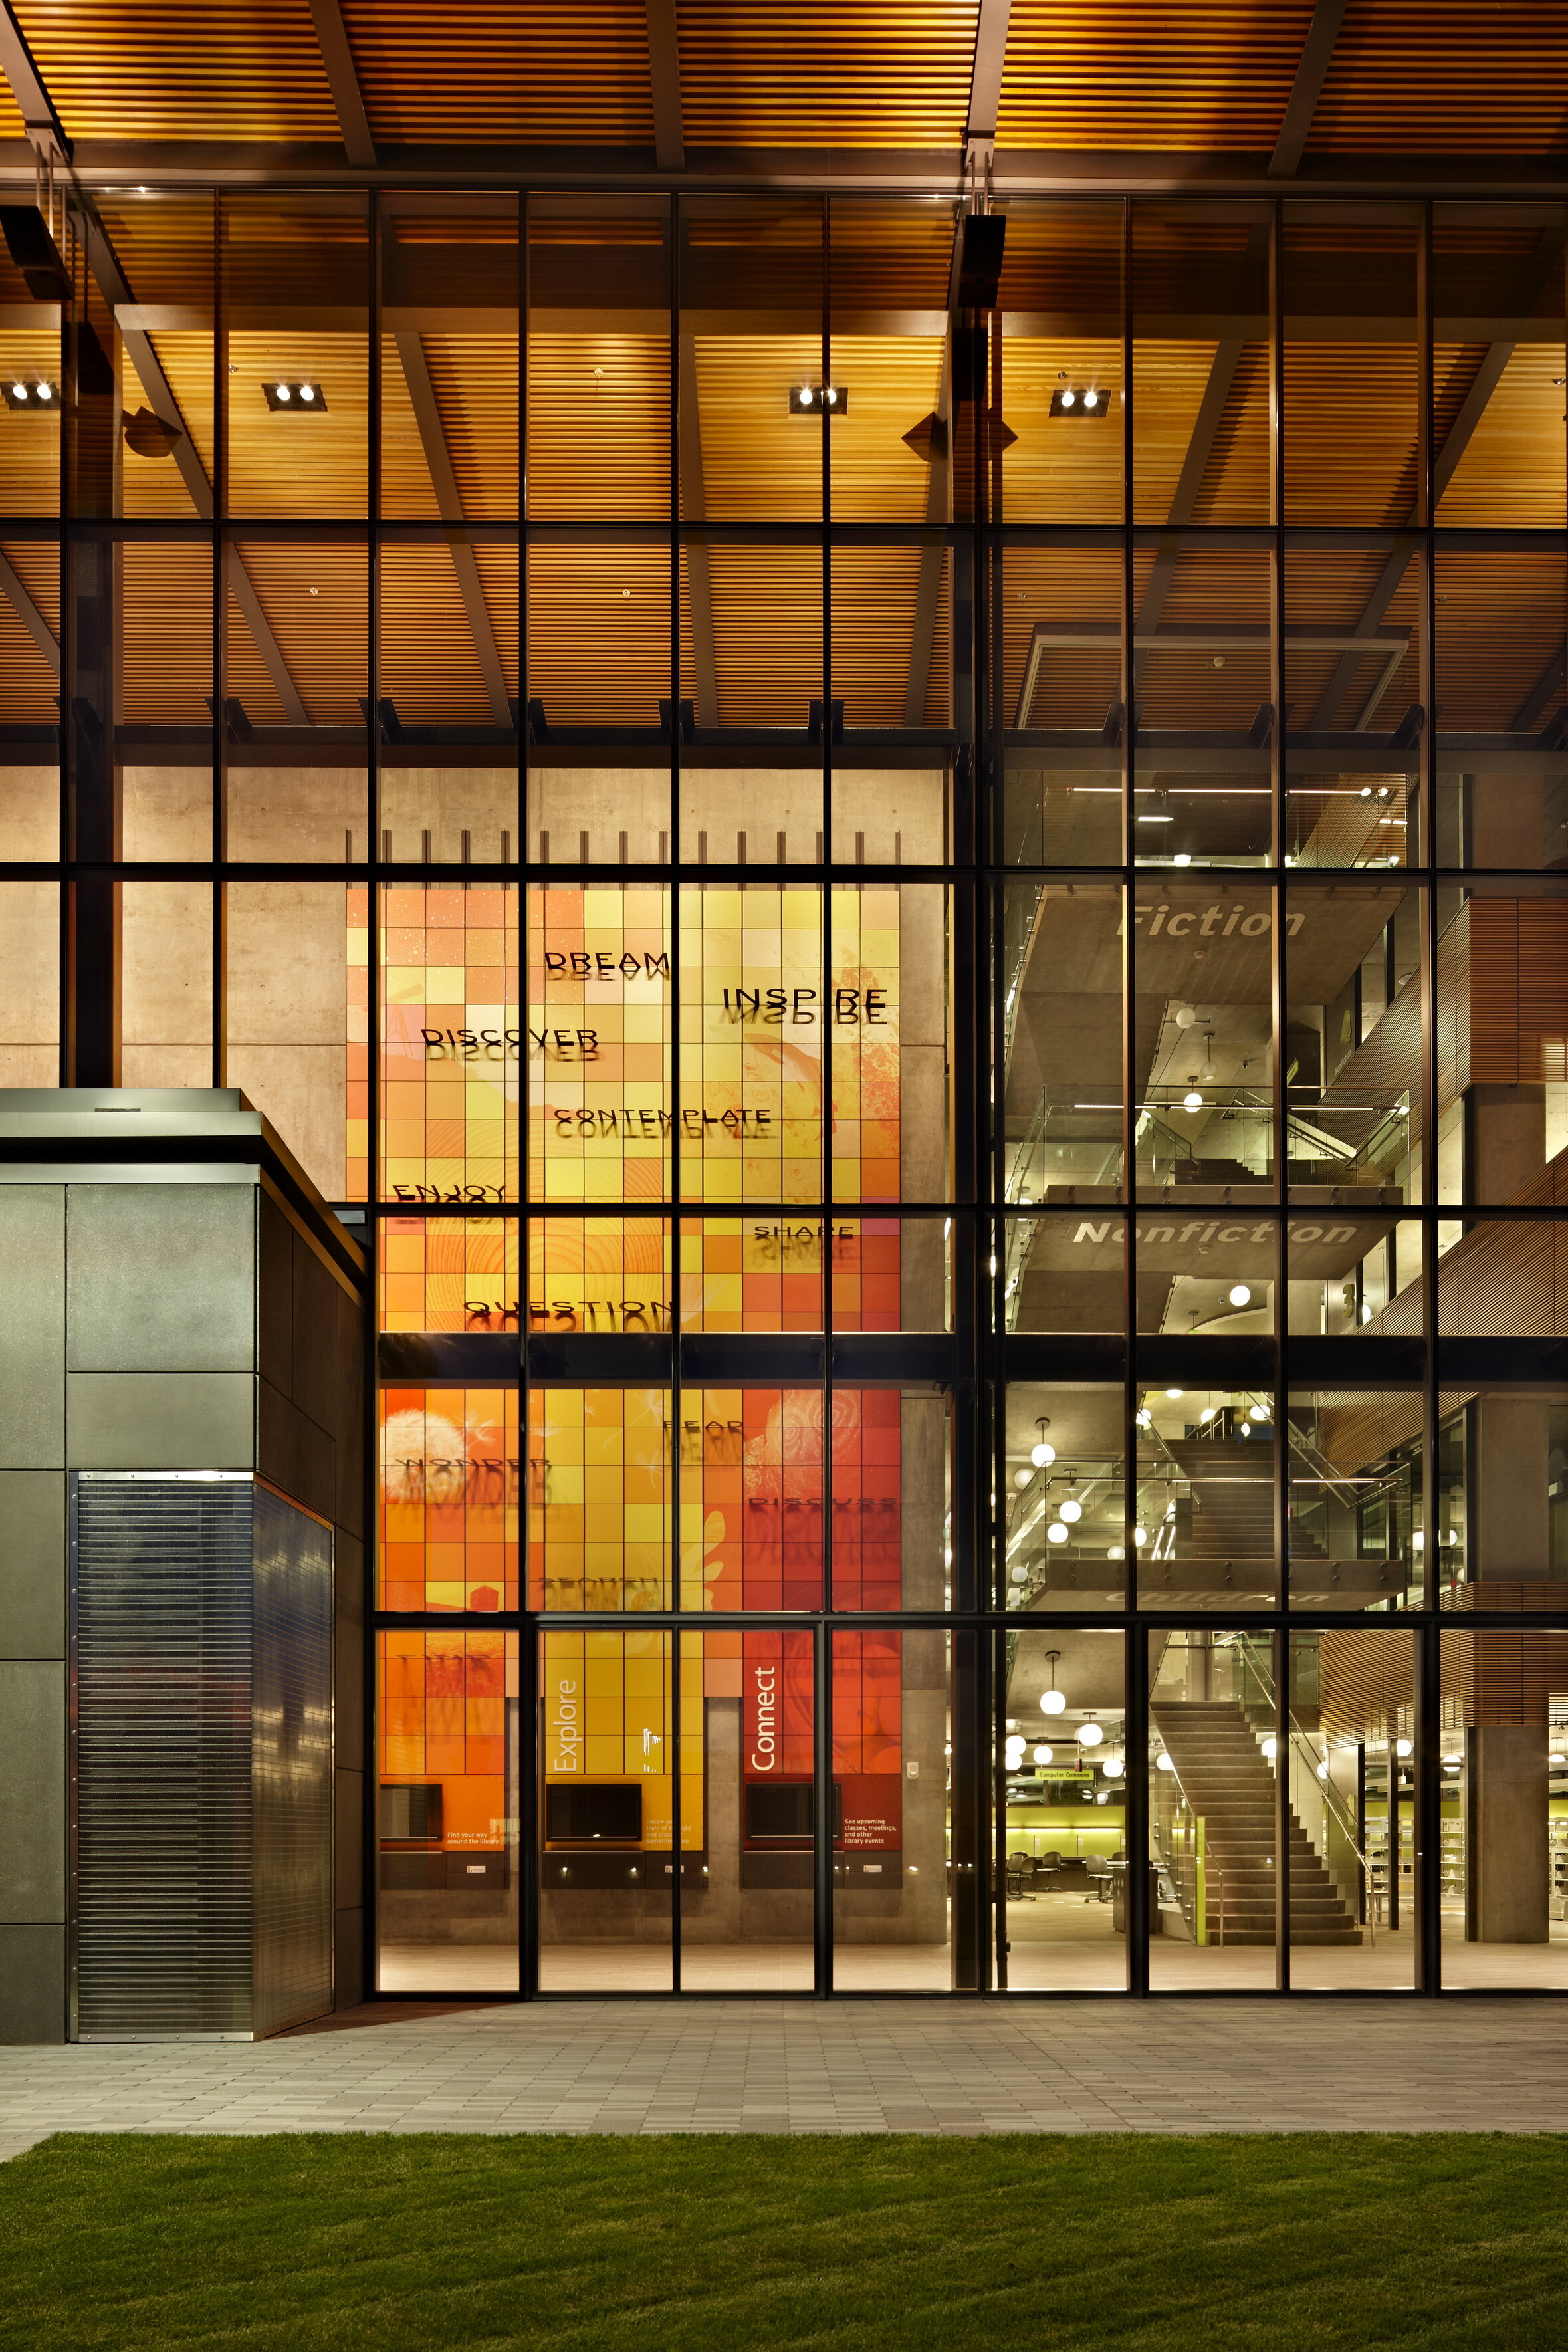 Vancouver Community Library, photography by Ben Benschneider.